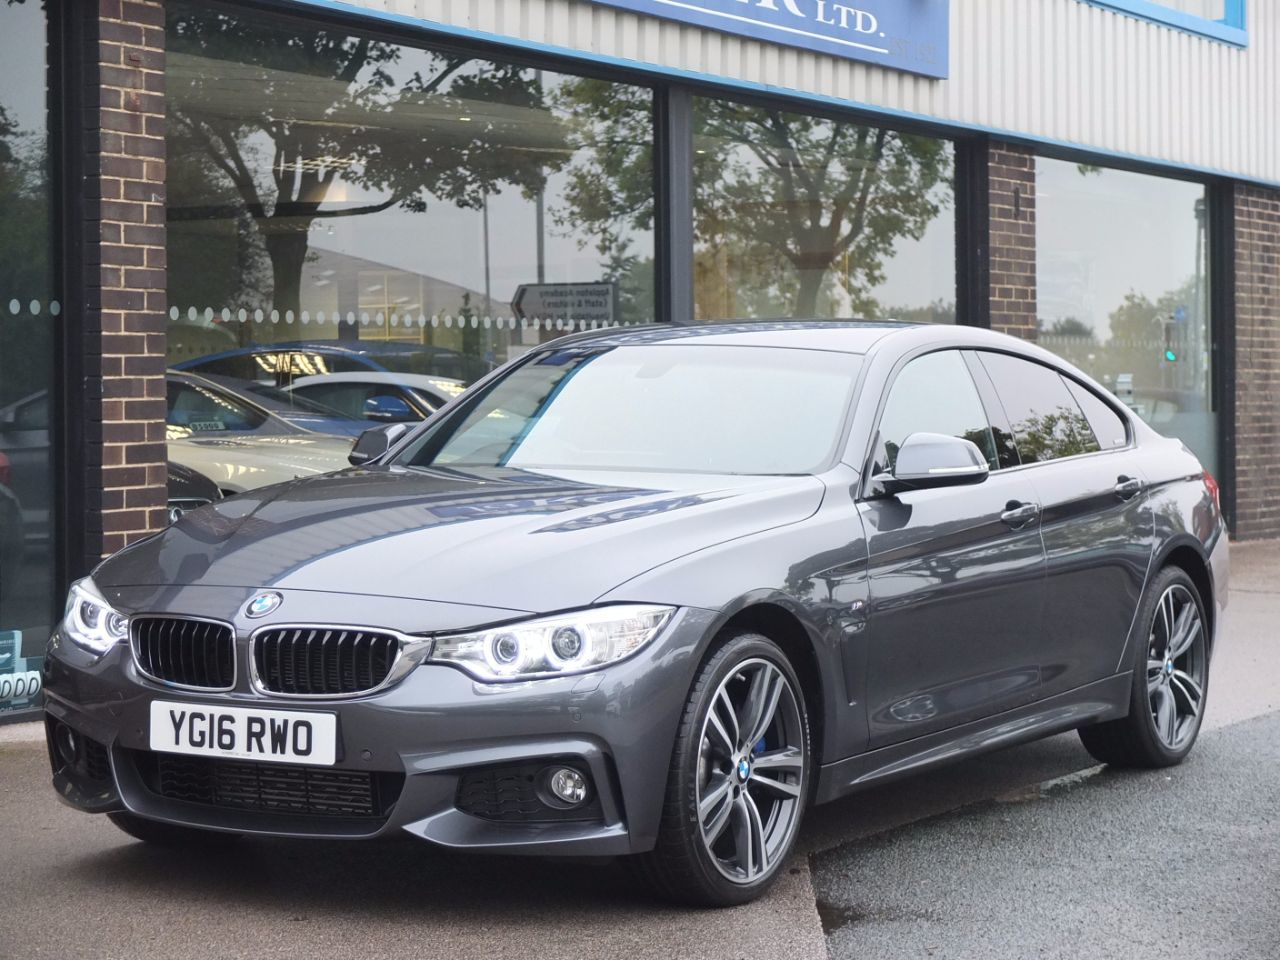 BMW 4 Series 3.0 435d xDrive M Sport Gran Coupe Auto [Pro Media, M Sport Plus Pack)] Coupe Diesel Mineral Grey MetallicBMW 4 Series 3.0 435d xDrive M Sport Gran Coupe Auto [Pro Media, M Sport Plus Pack)] Coupe Diesel Mineral Grey Metallic at fa Roper Ltd Bradford